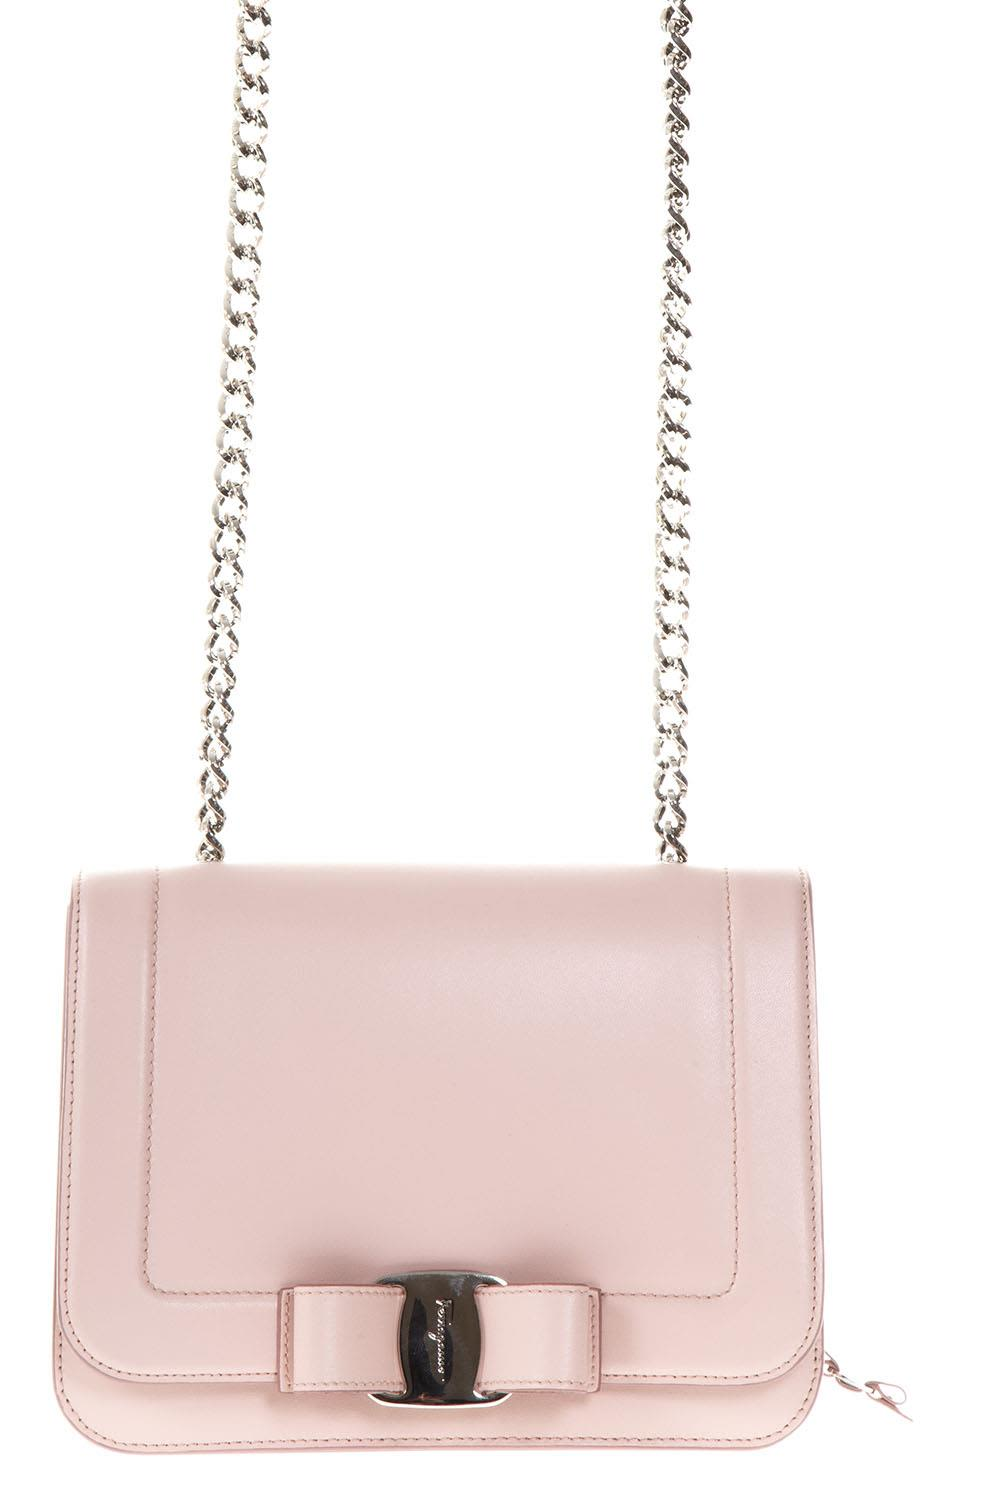 Salvatore Ferragamo Vara Small Pink Leather Shoulder Bag